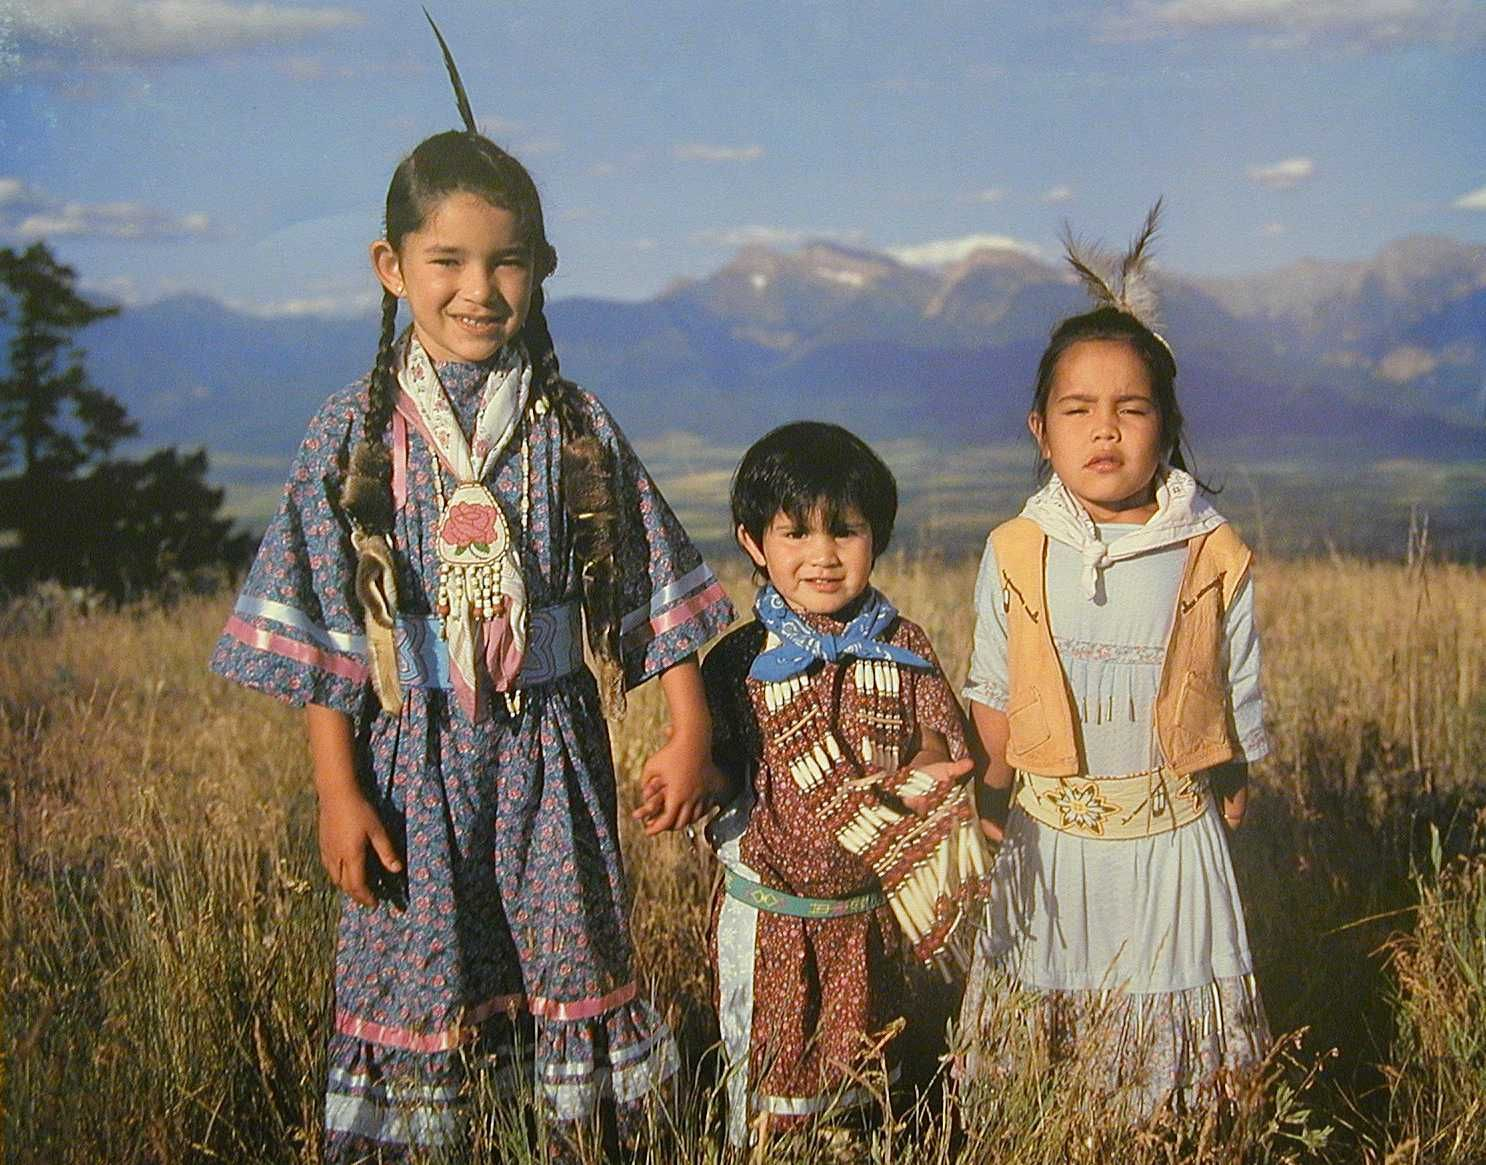 indian americans The uspto has established a database to record the official insignia of federally and state-recognized native american tribes.